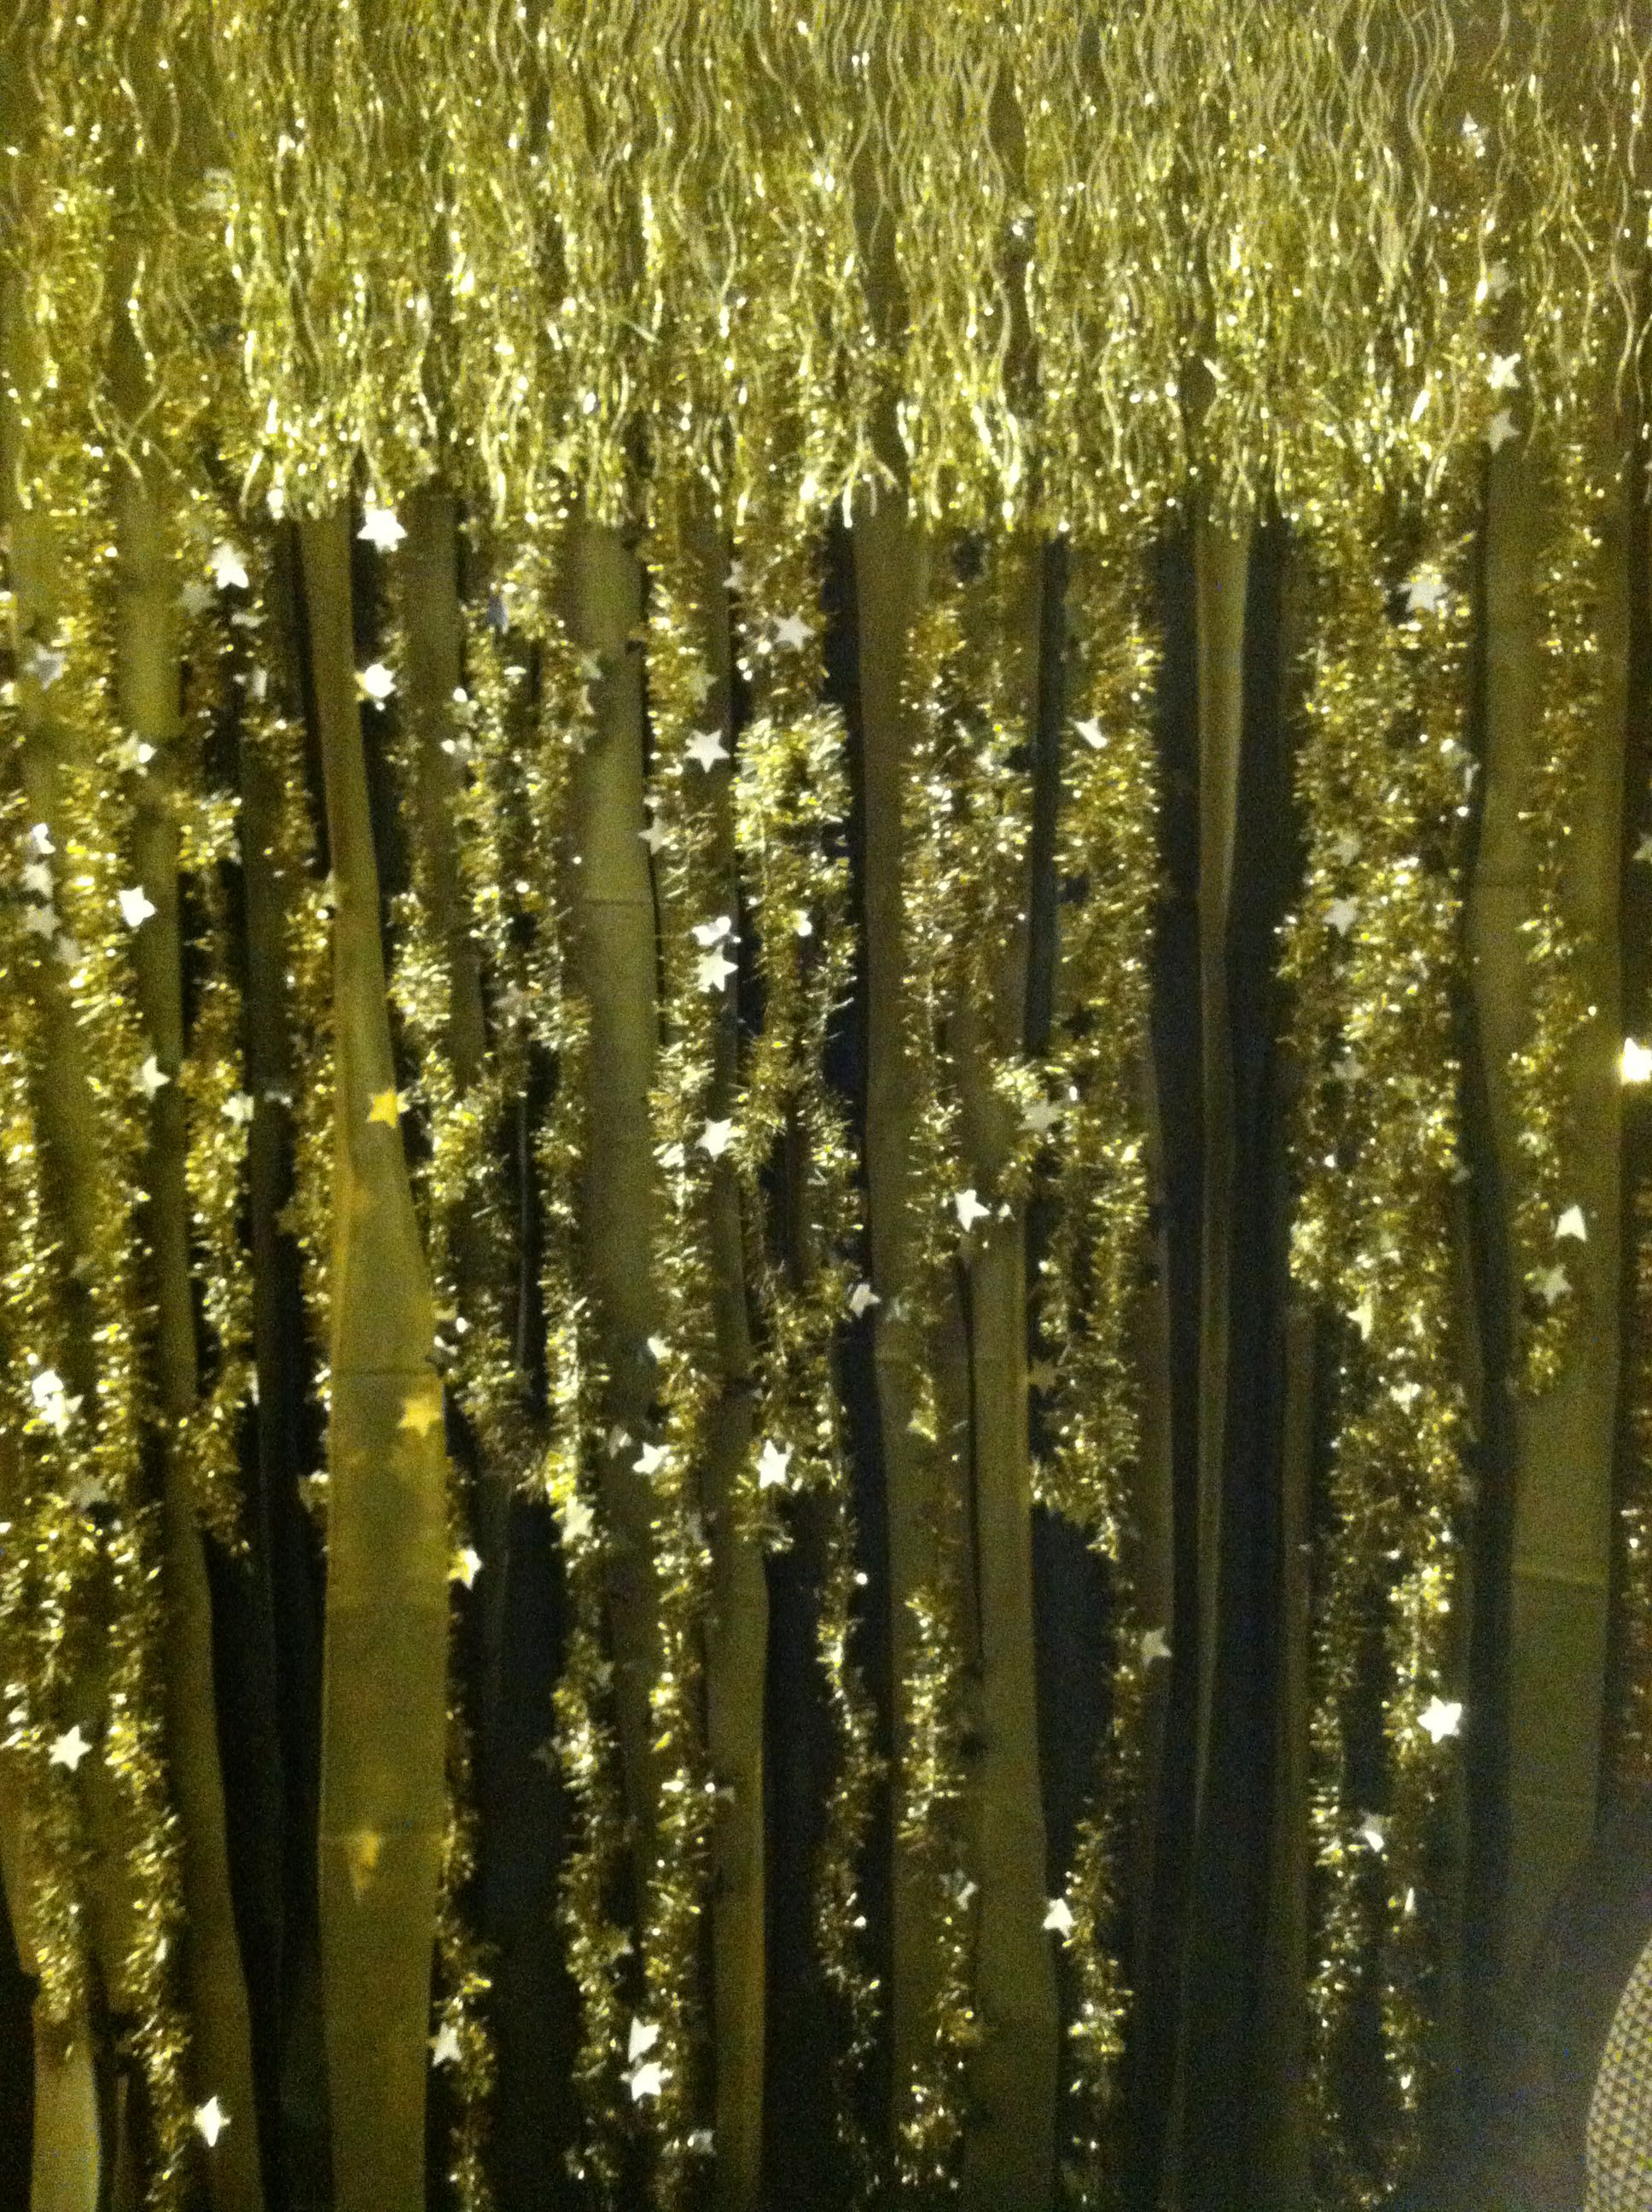 DIY New Years Eve photo booth backdrop using Dollar Tree black and gold plastic tablecloths, garland, and tinsel drape that was 50% off after Xmas.  Cut the tablecloth in wide strips then glue garland and tinsel drape. photo booth. new years eve party.